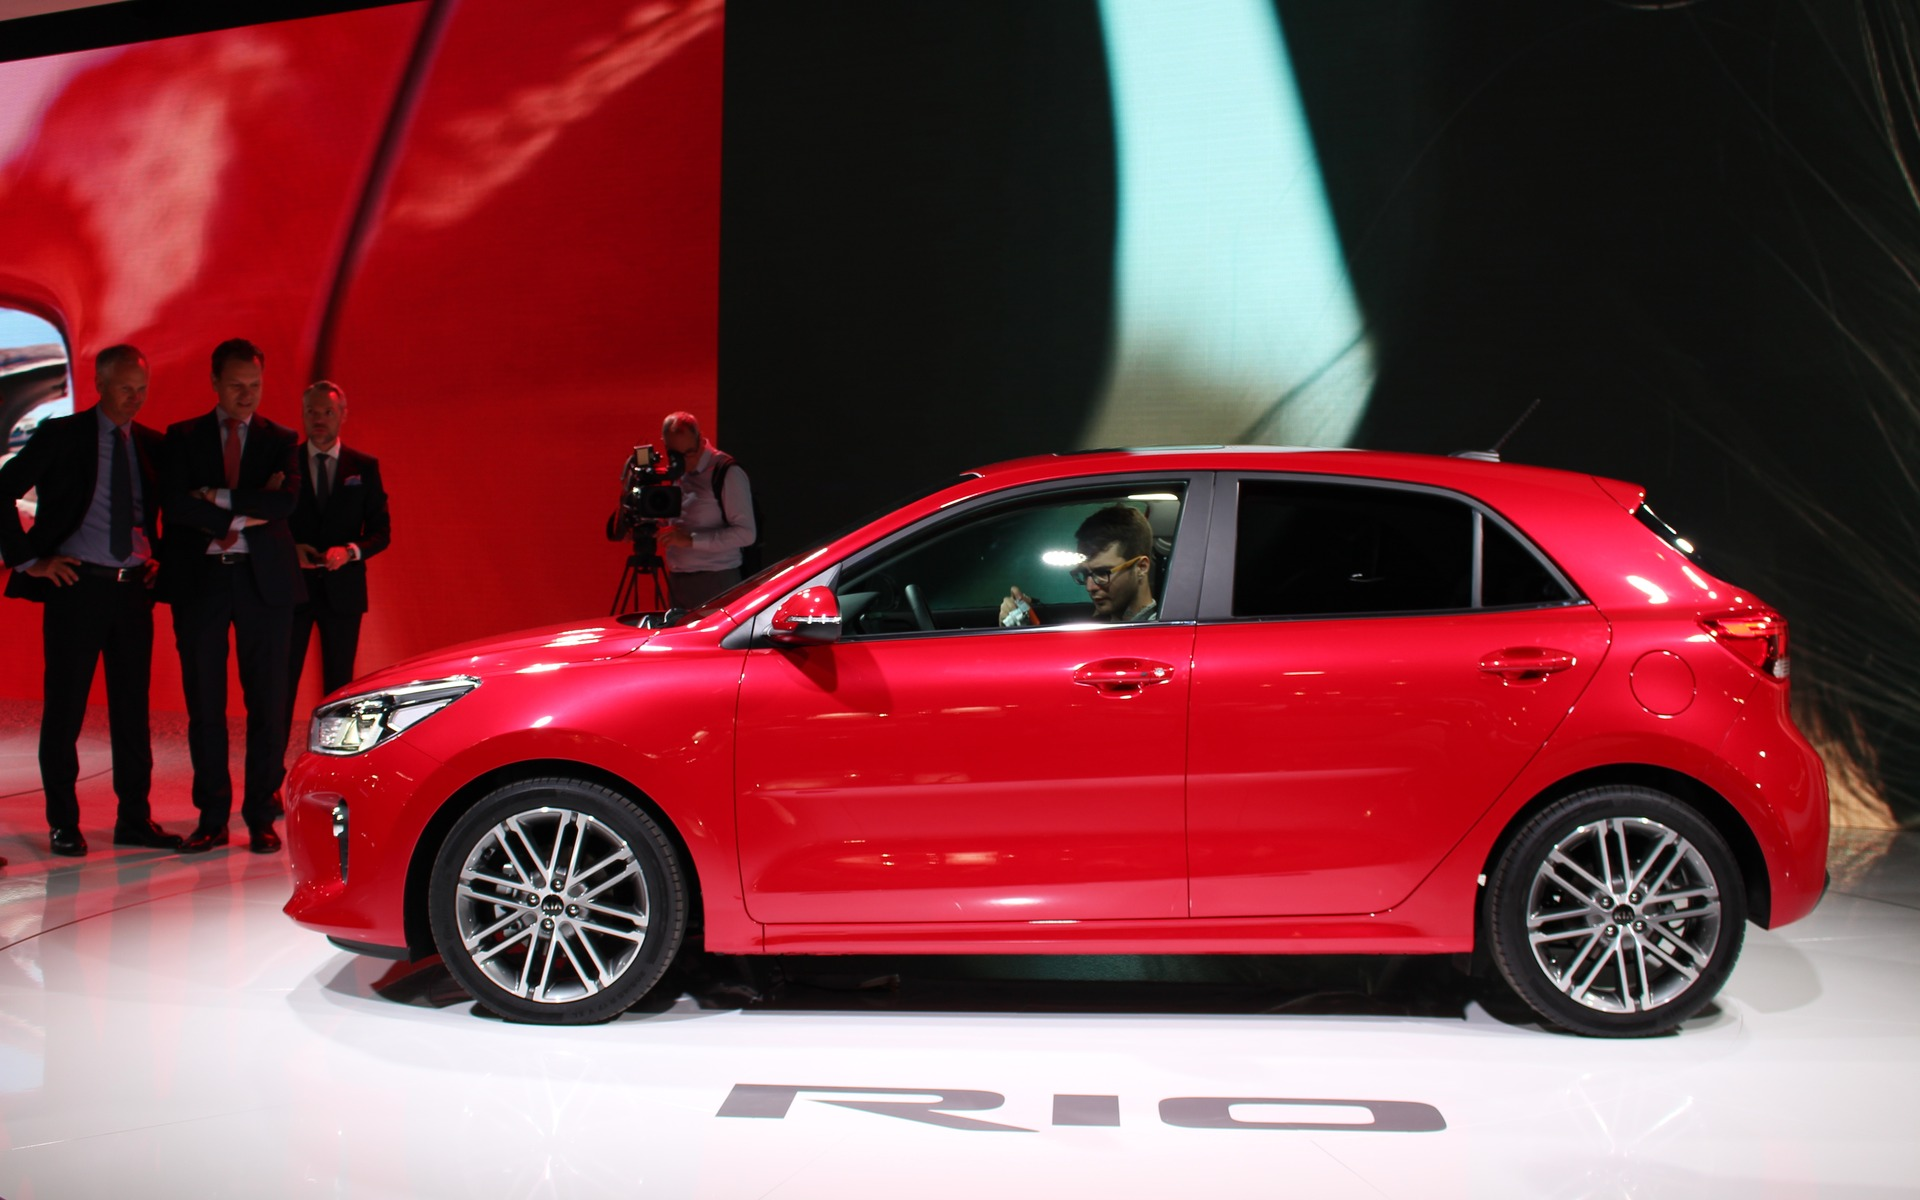 2019 Kia Rio >> 2018 Kia Rio Five-Door Bows in Paris - 12/60